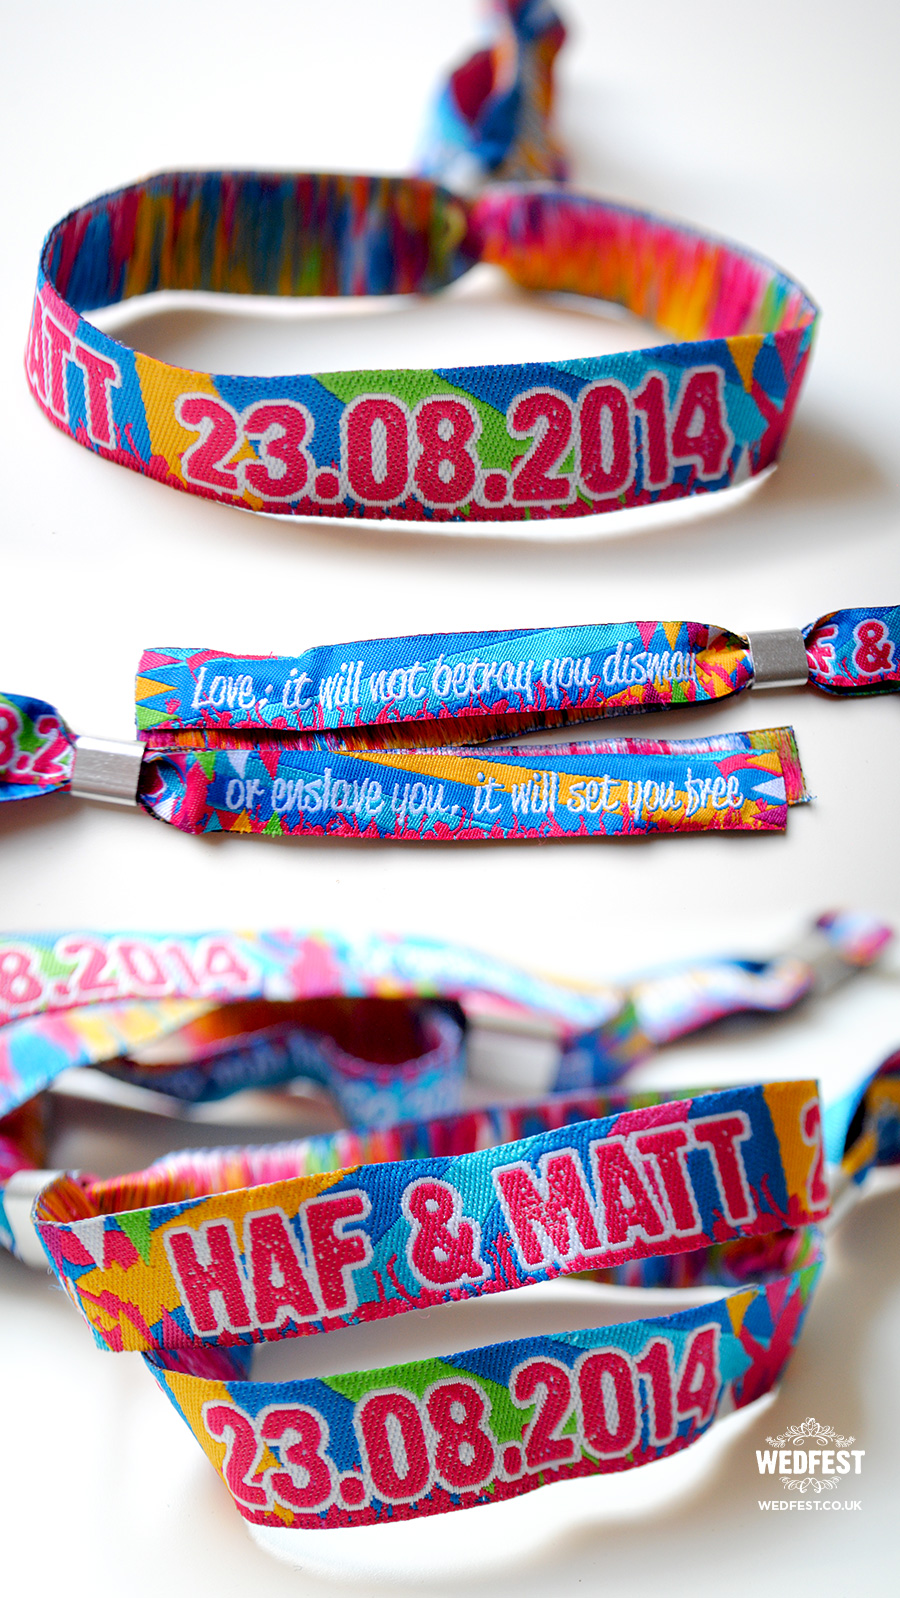 fabric wristbands for weddings and events